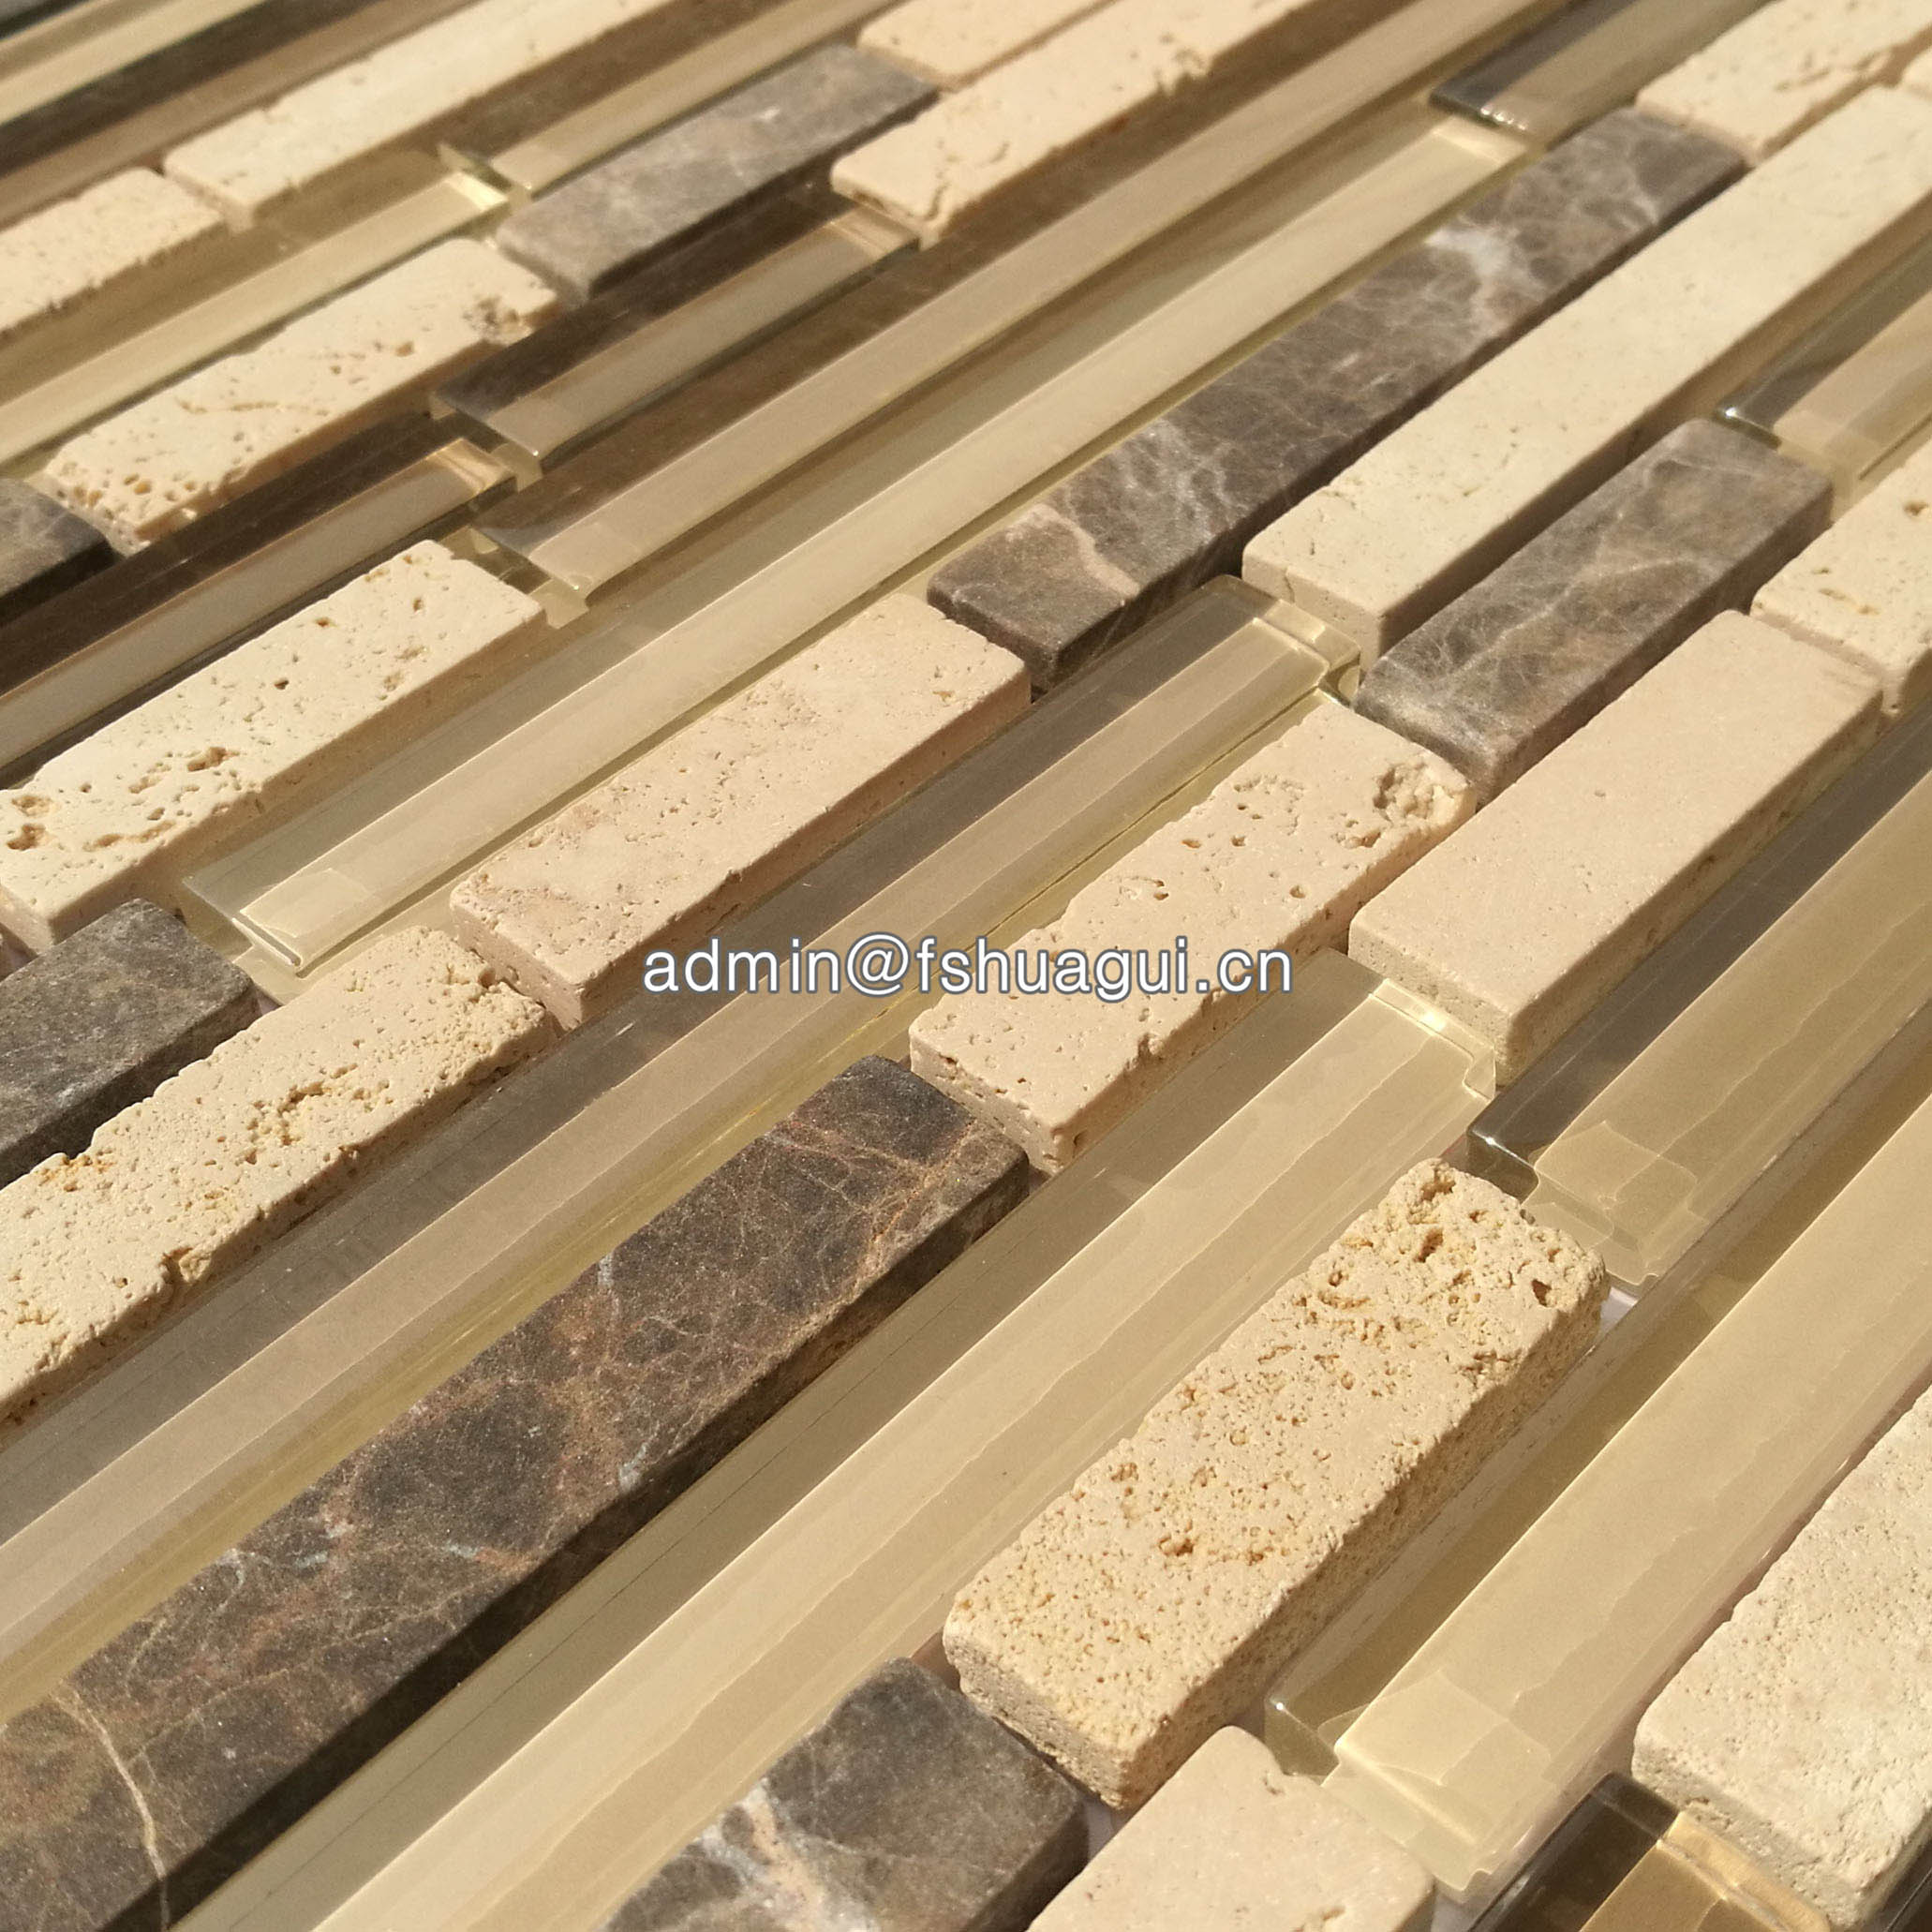 Huagui Brown glass stone mosaic tile  HG-CDT815002 STONE MOSAIC TILE image2